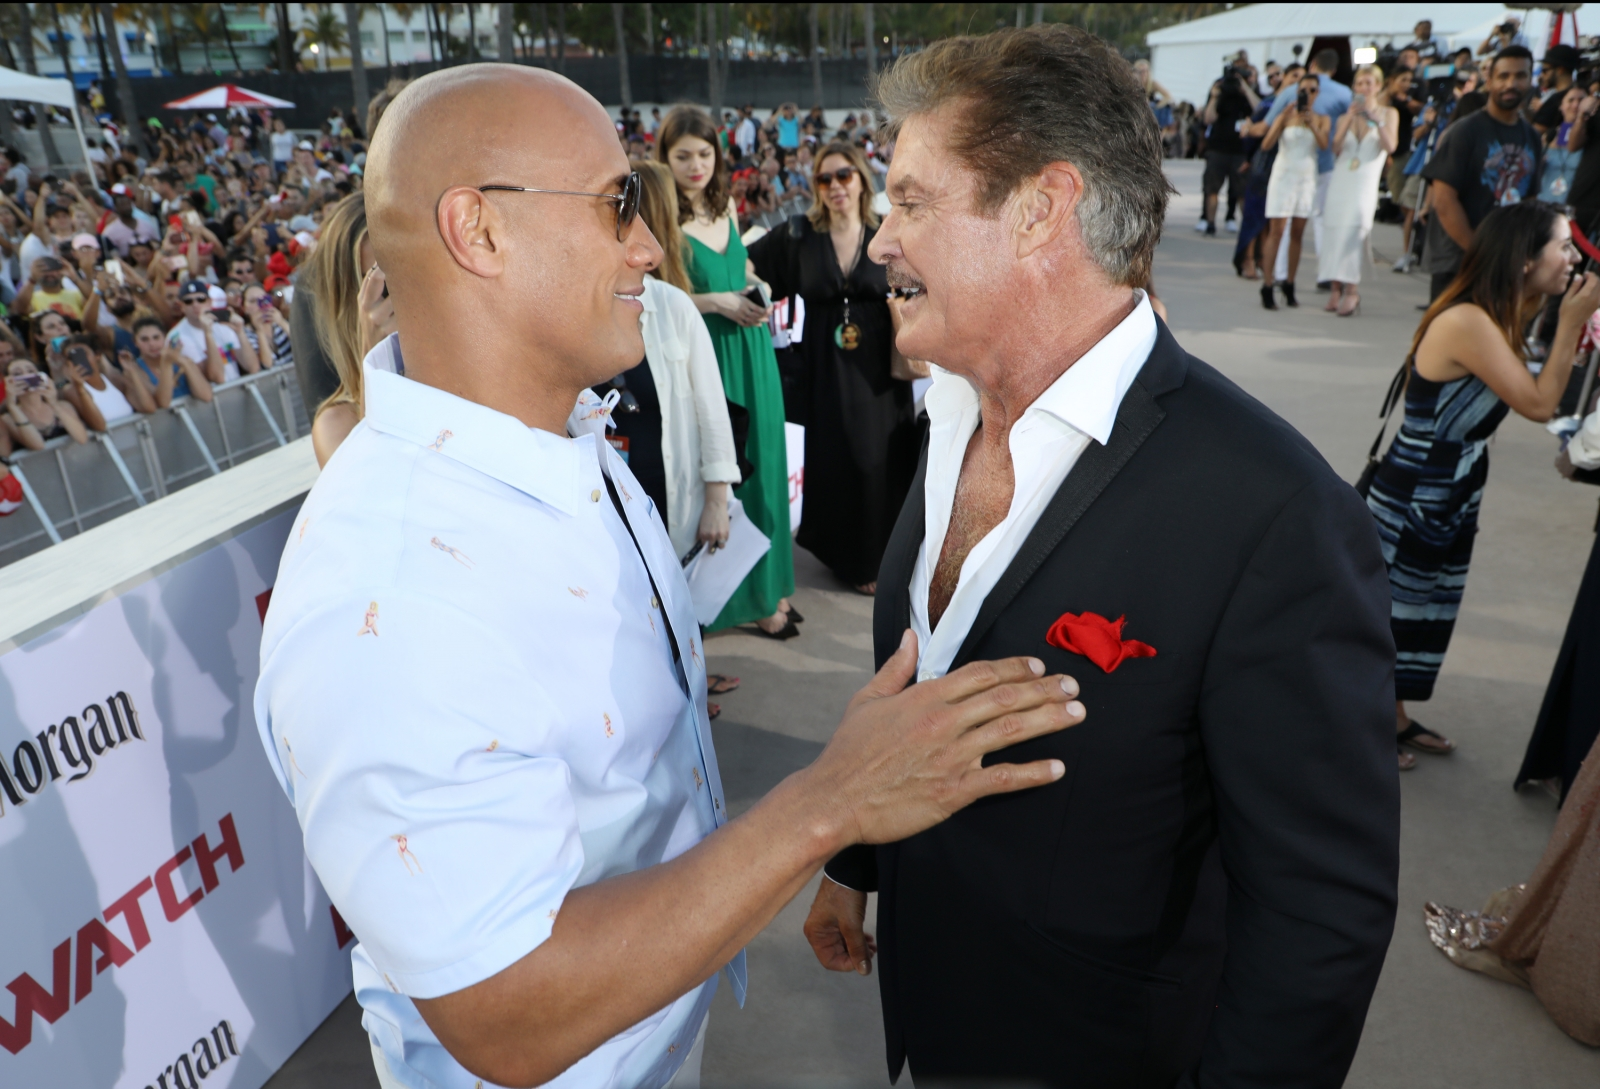 The Hoff slams Dwayne Johnson's movie: 'It's still not Baywatch'